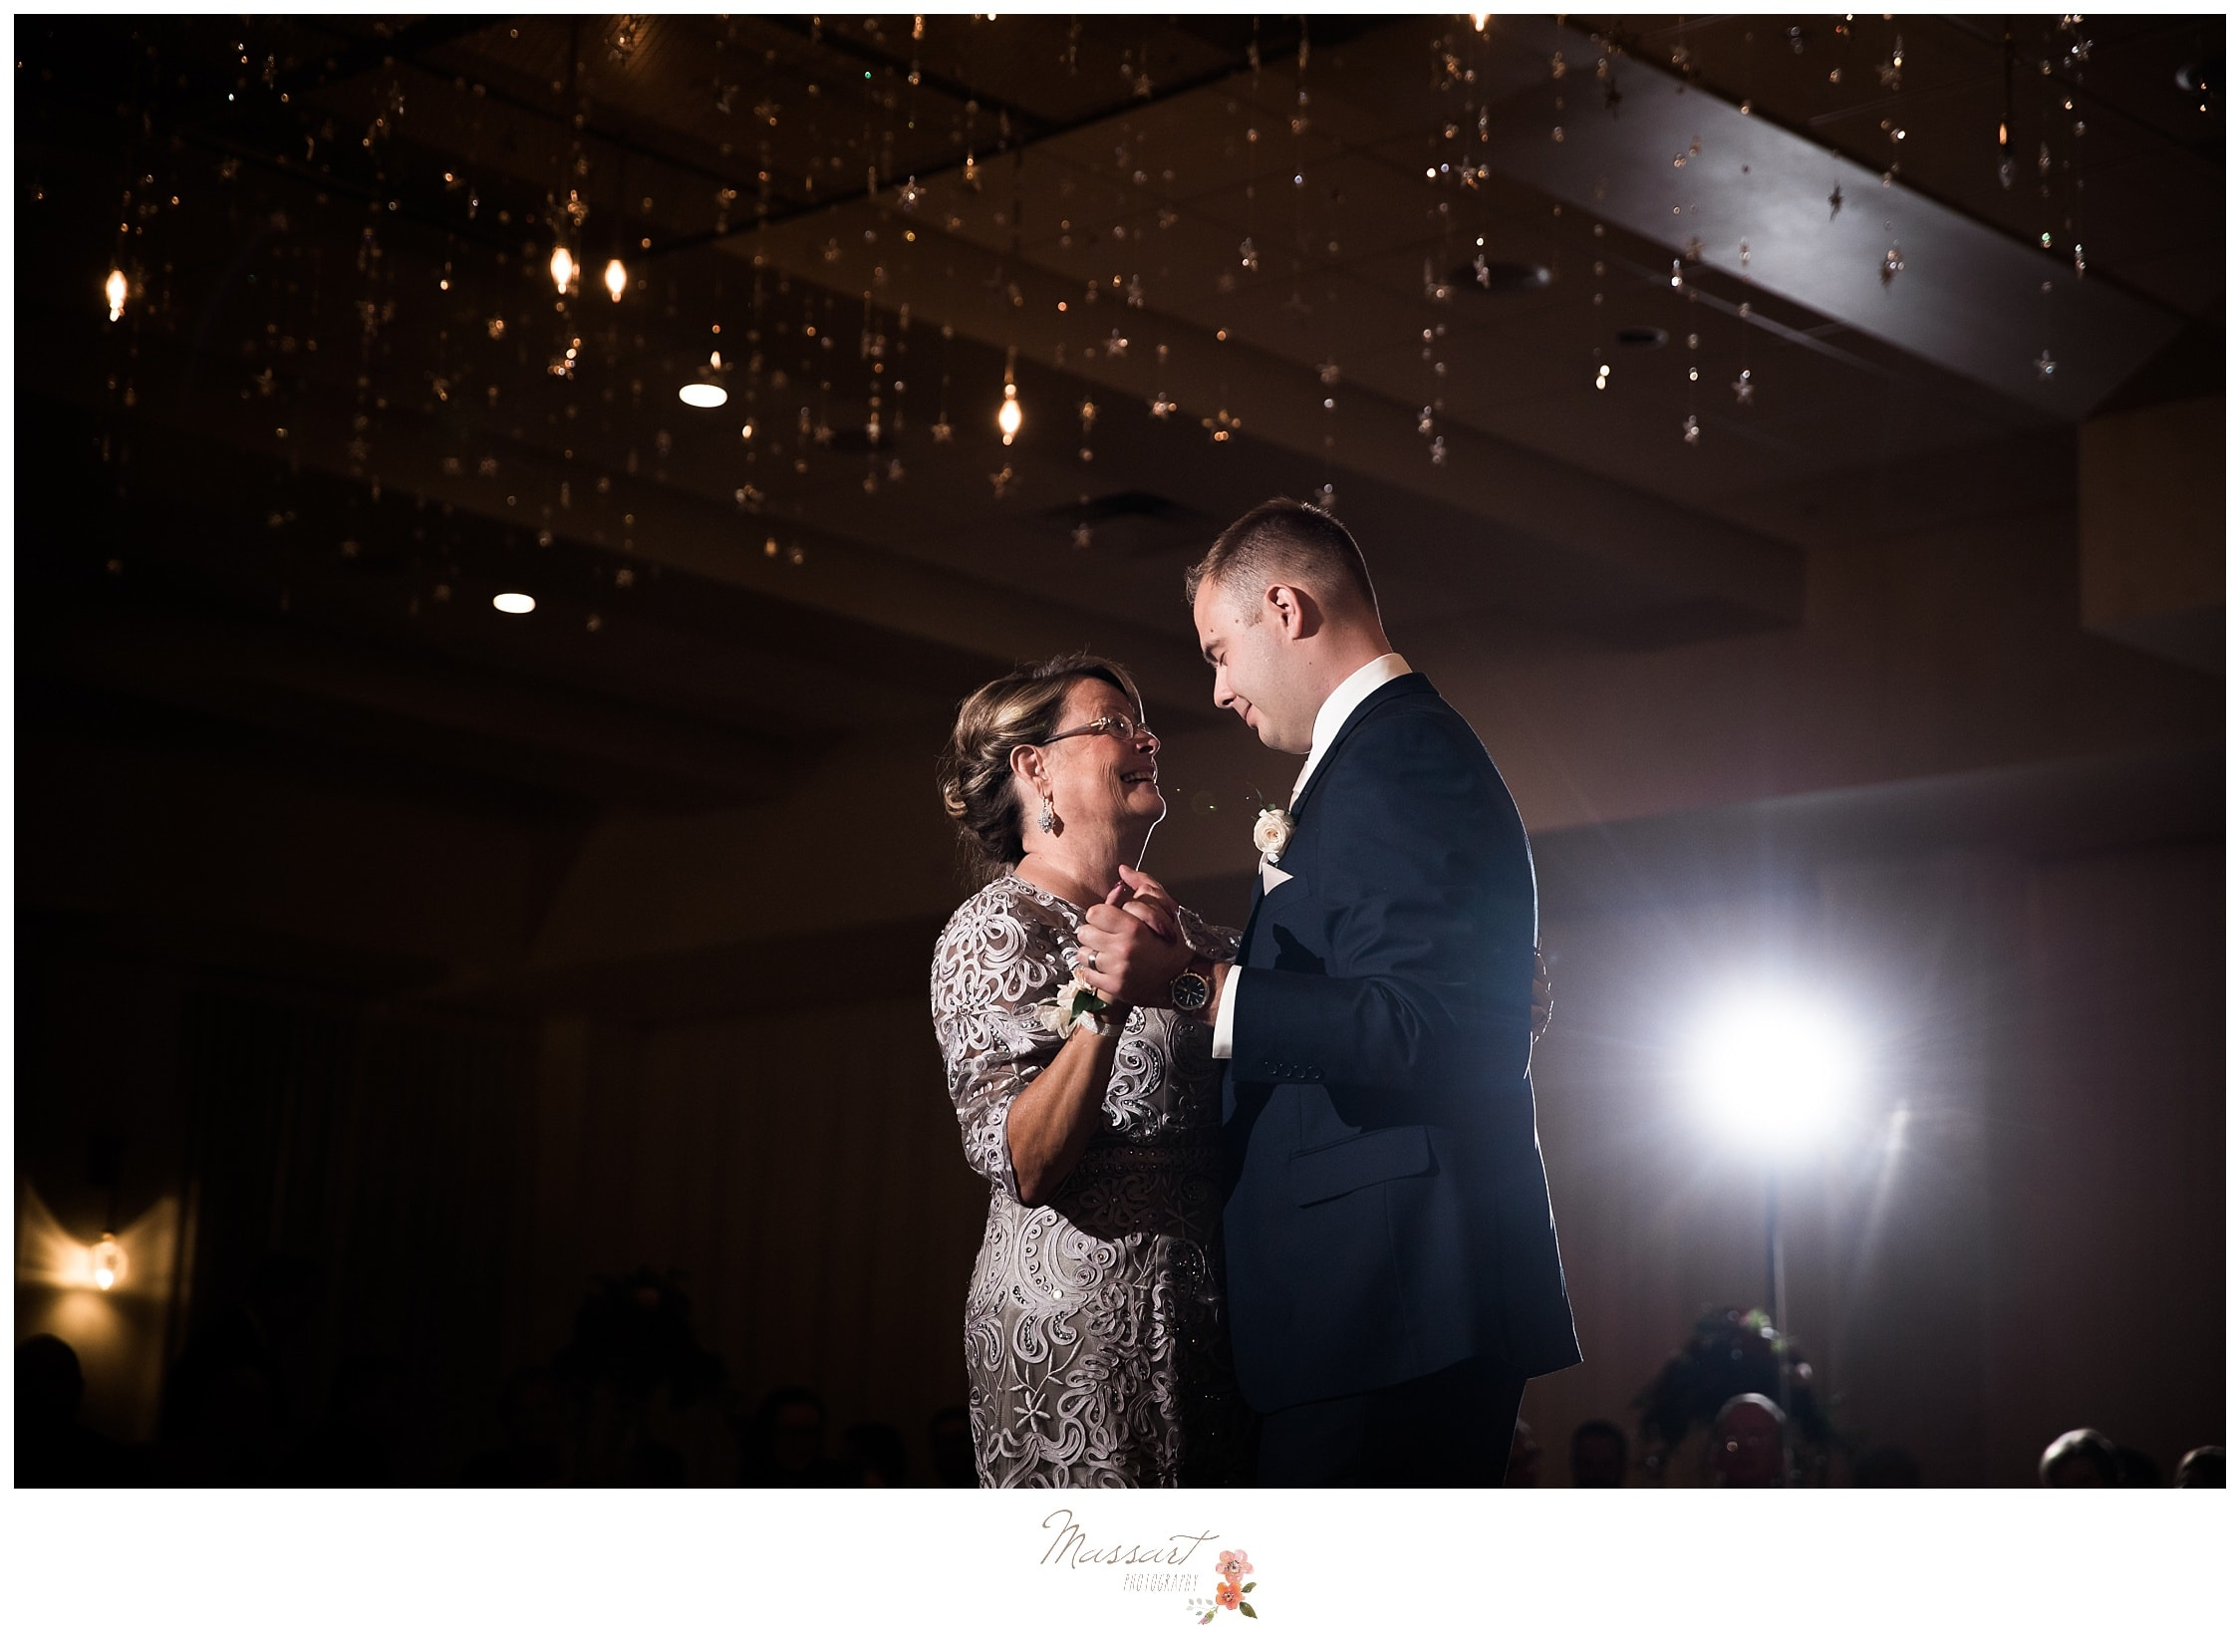 The groom and his mother share a dance together at the wedding reception photographed by Massart Photography RI